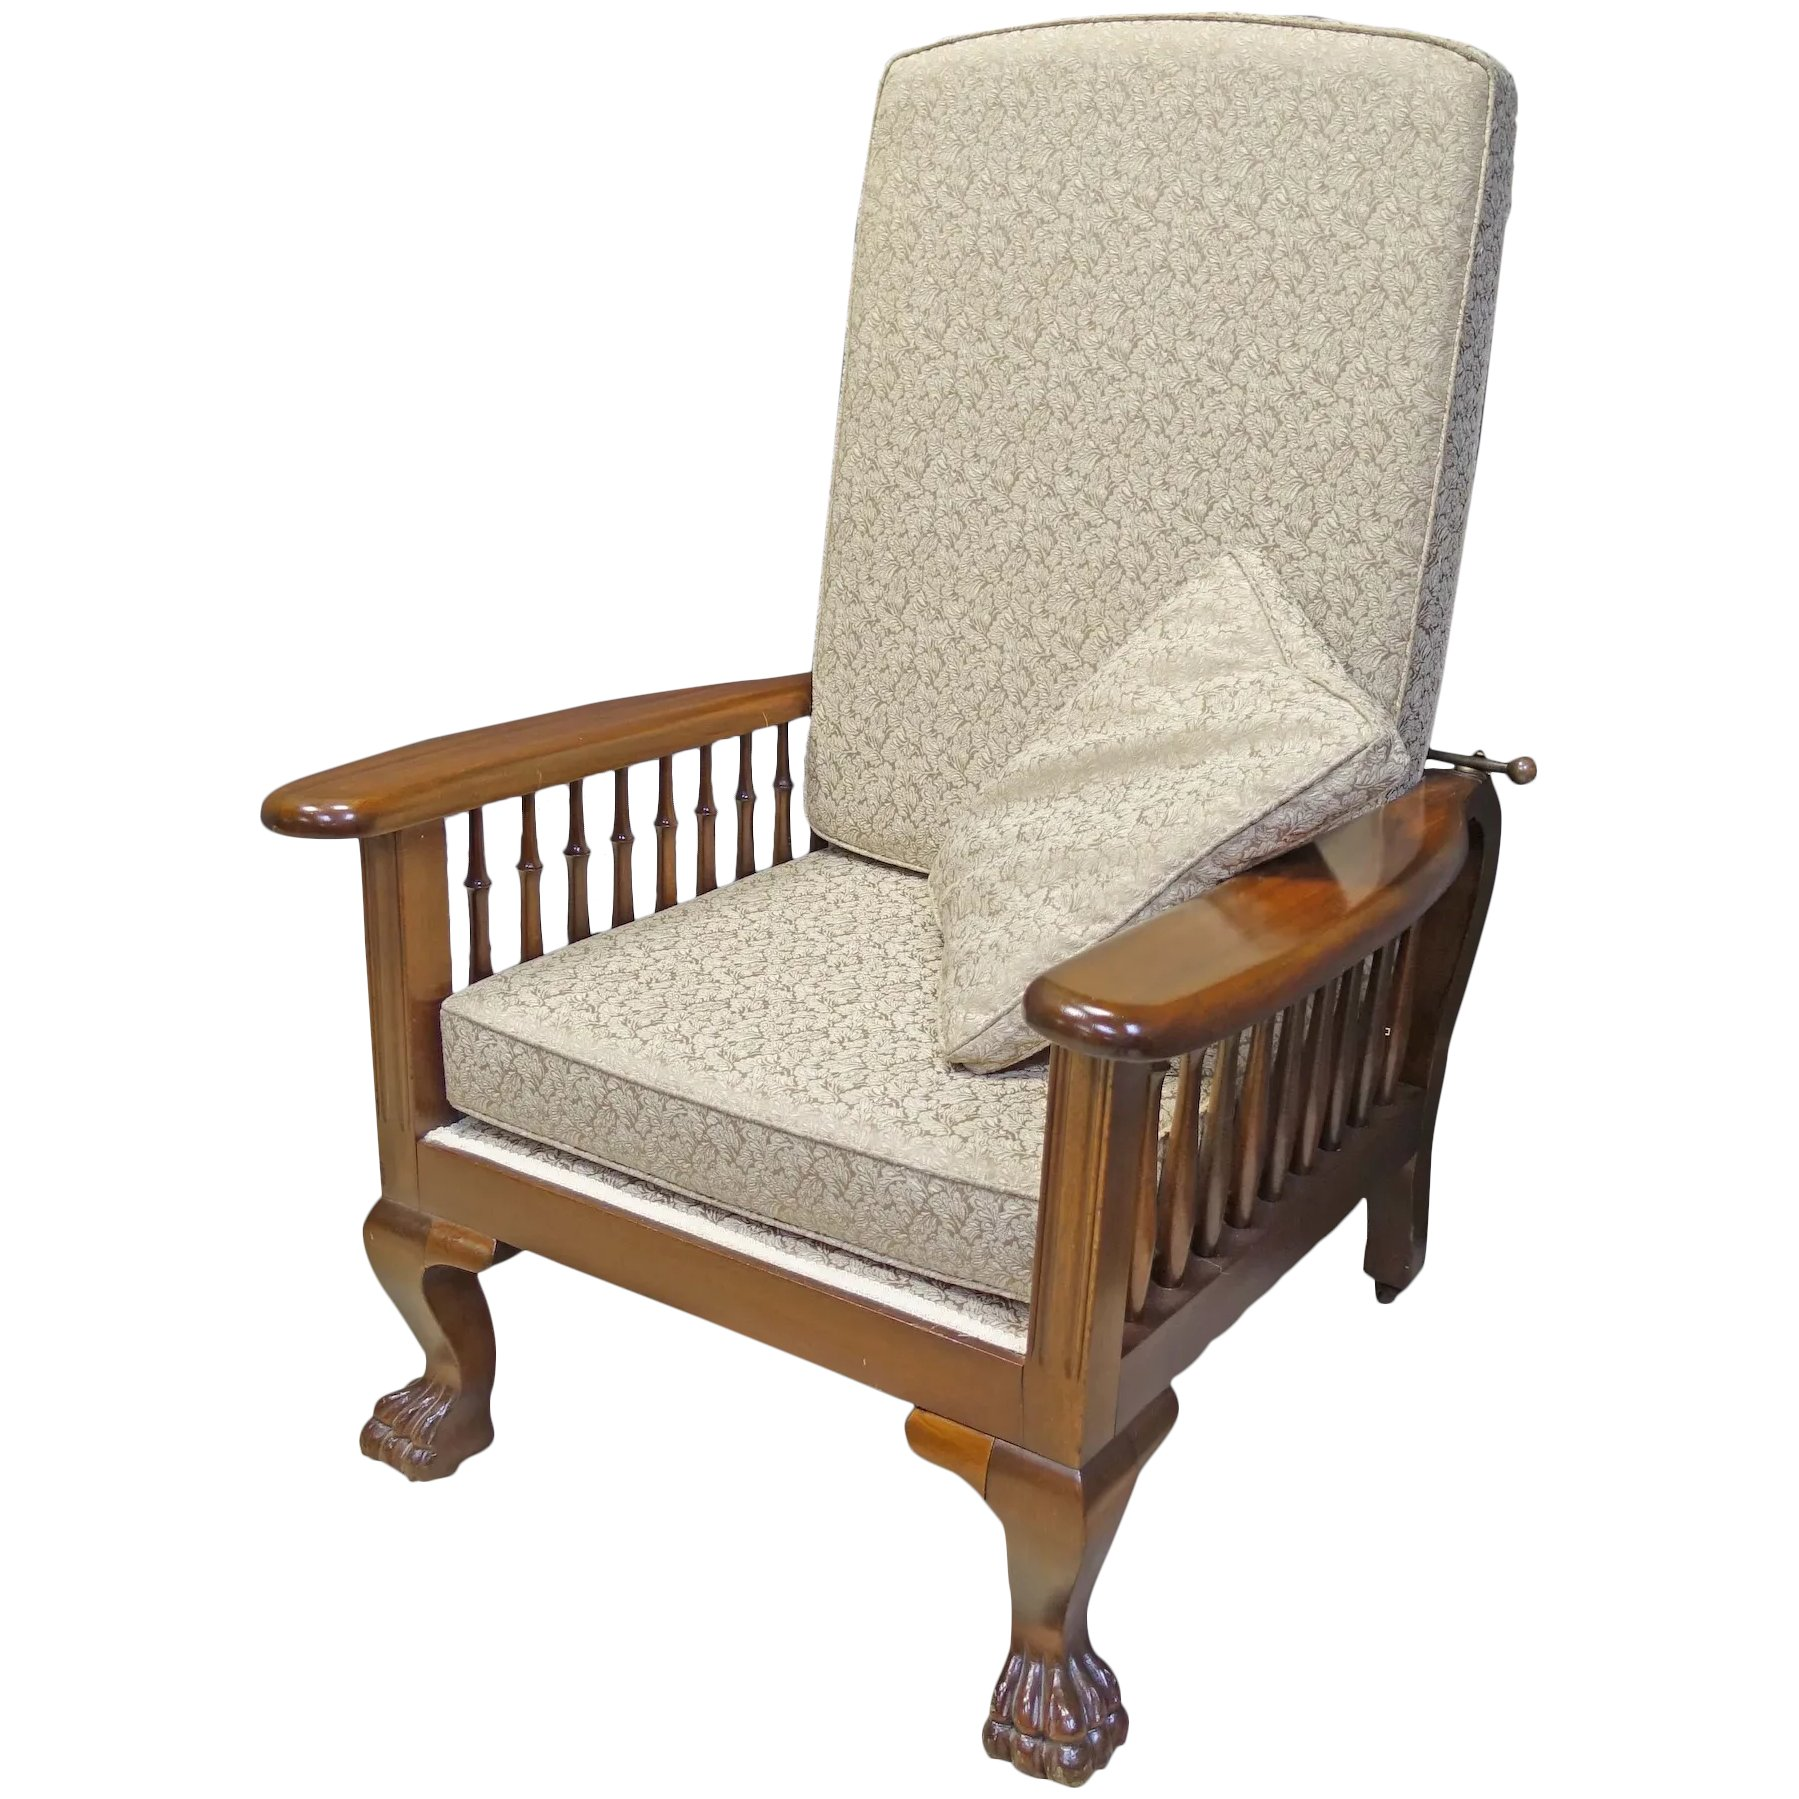 Brilliant Mahogany Morris Chair Recliner Alphanode Cool Chair Designs And Ideas Alphanodeonline